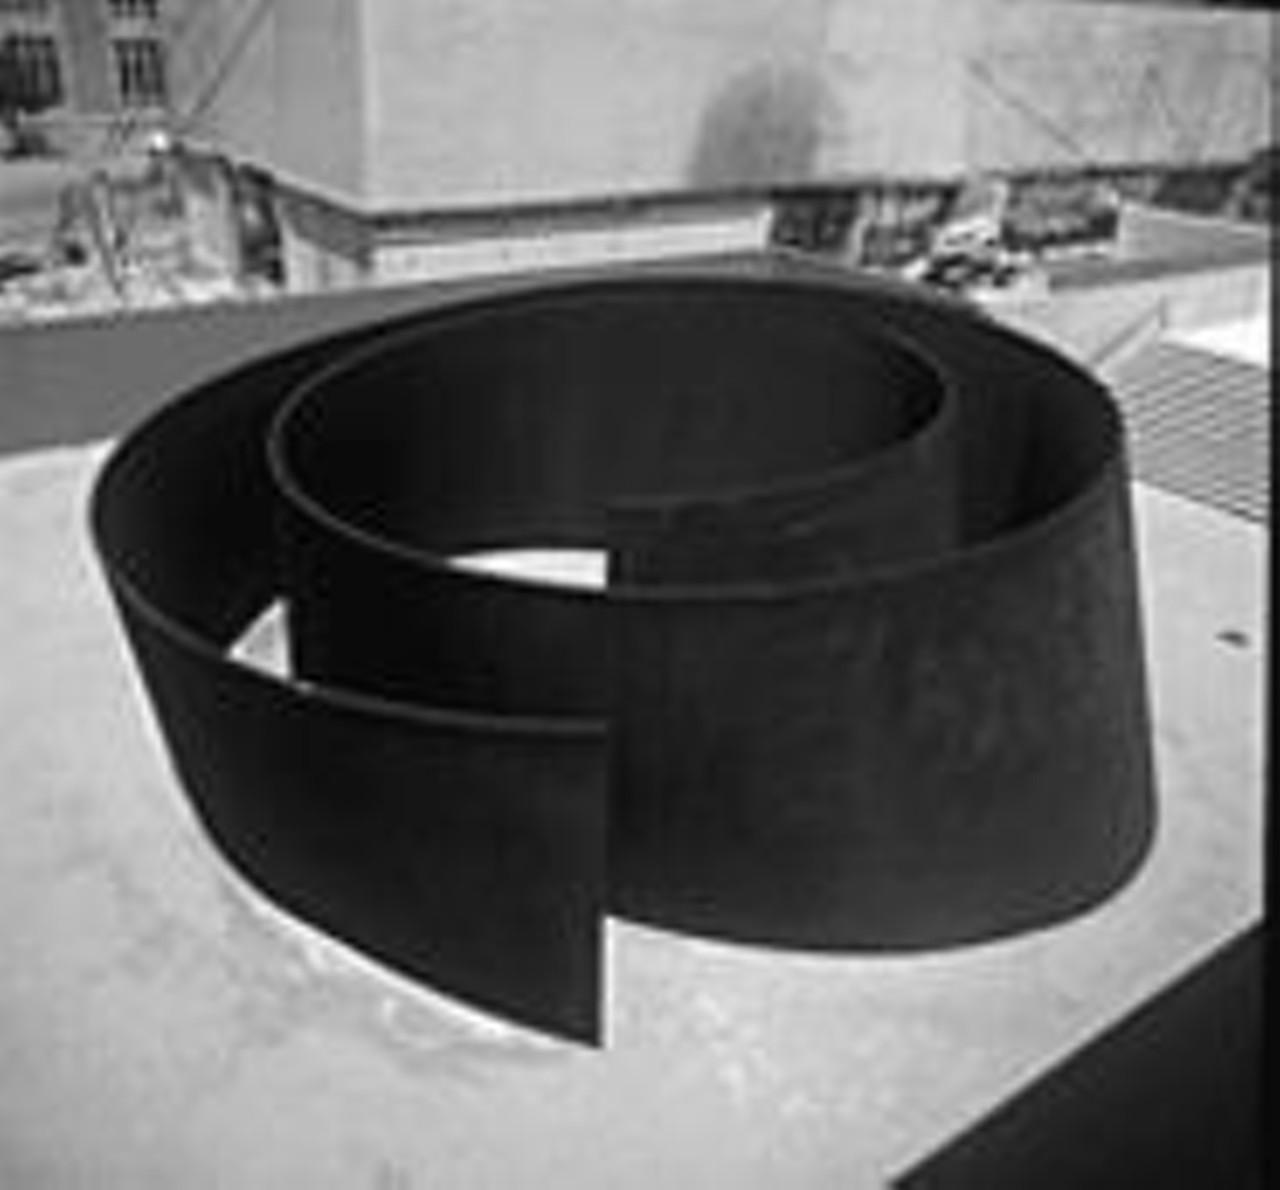 visual analysis of richard serra's two Find and compare statistical analysis software free, interactive tool to quickly narrow your choices and contact multiple vendors  interactive and visual, jmp.